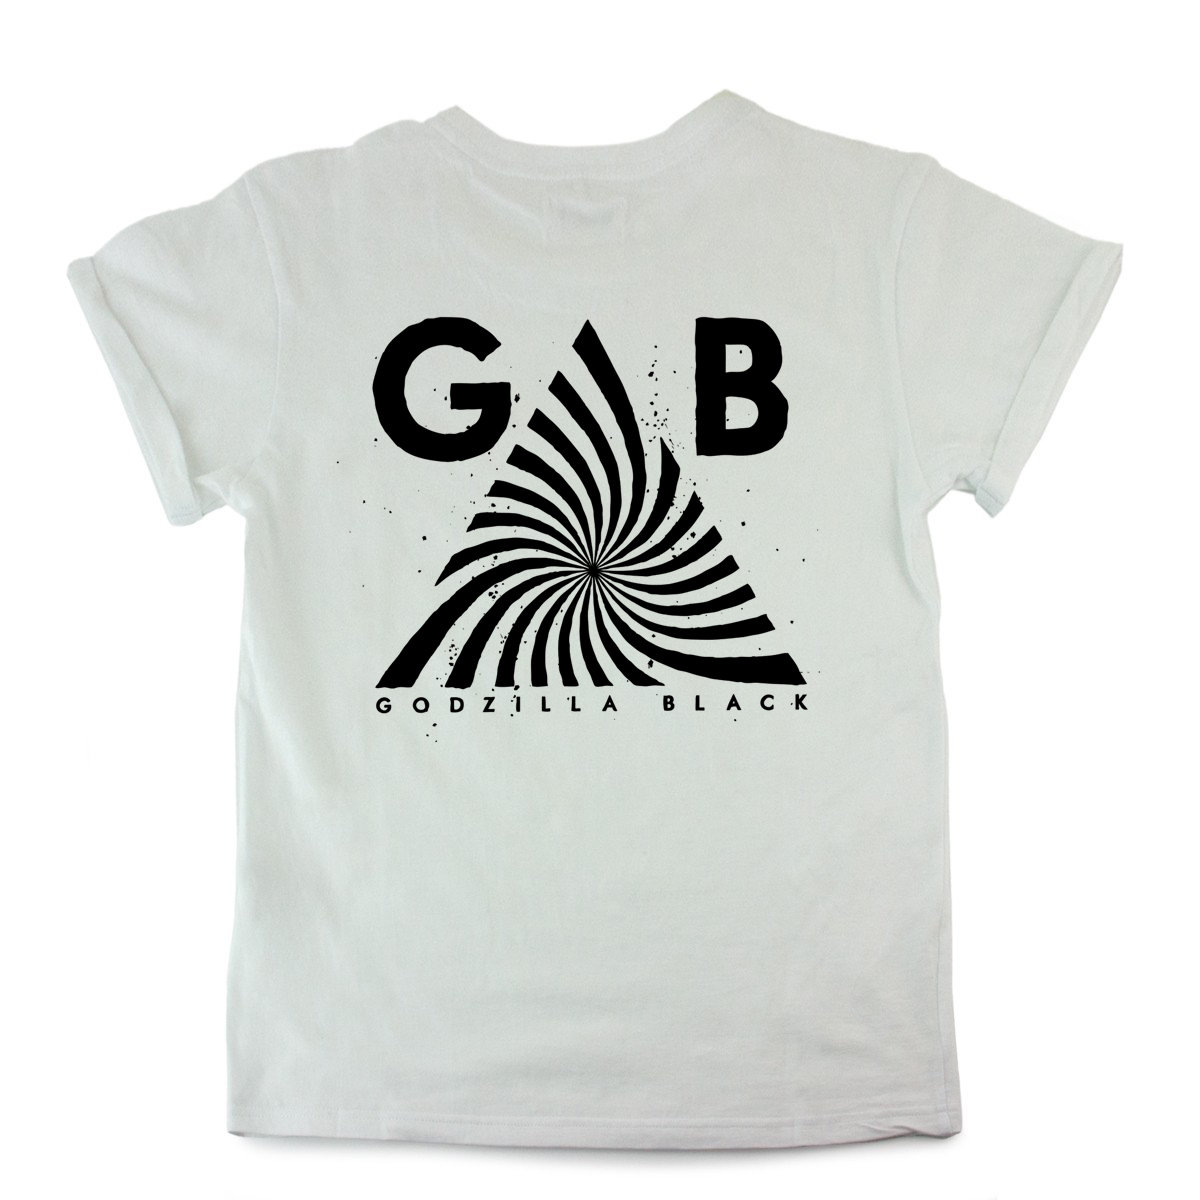 Good quality black t shirt - Black Print Gb Triangle Logo White T Shirt Digital Download Of The Great Terror Includes Unlimited Streaming Of The Great Terror Via The Free Bandcamp App